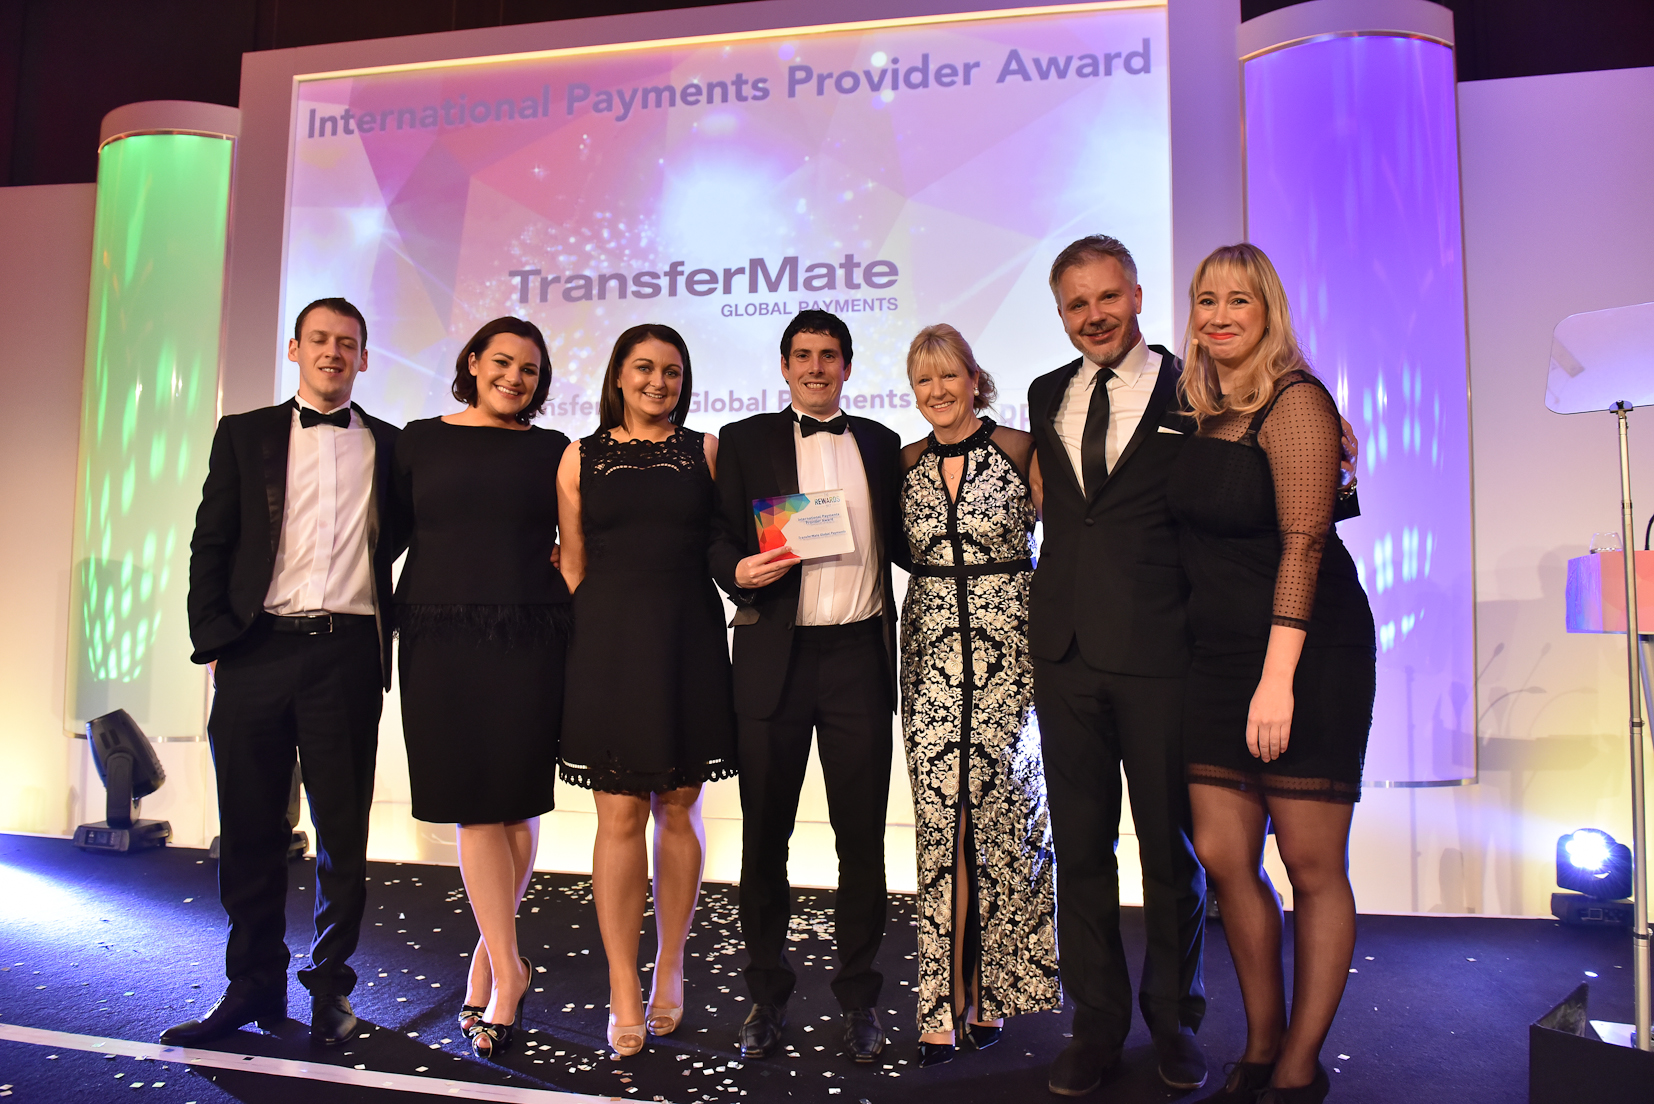 Winners 2017 - 8 International Payments Provider Award